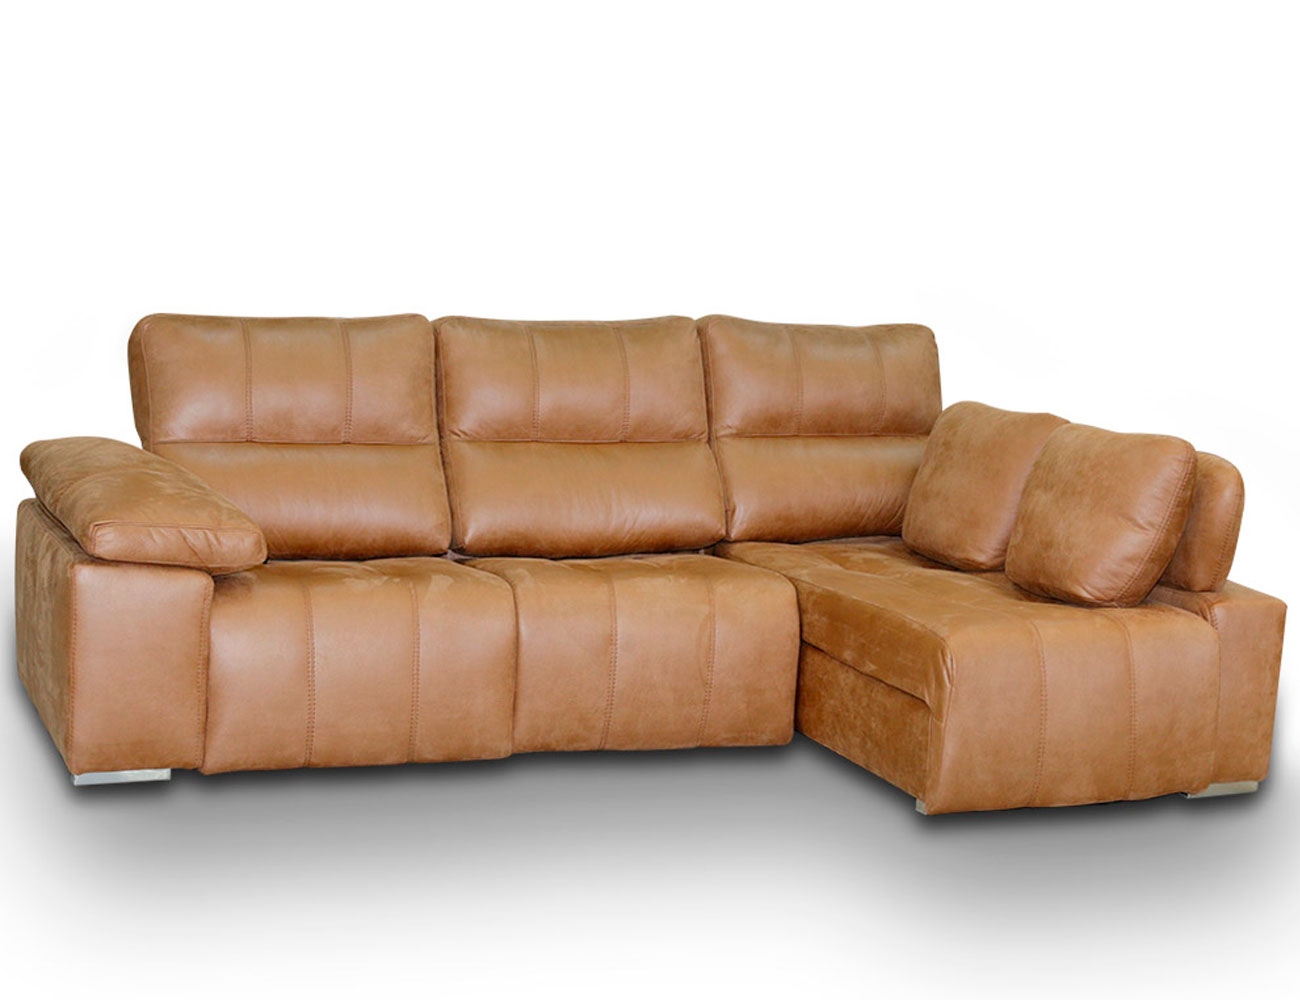 Sofa chaiselongue relax 2 motores anti manchas20